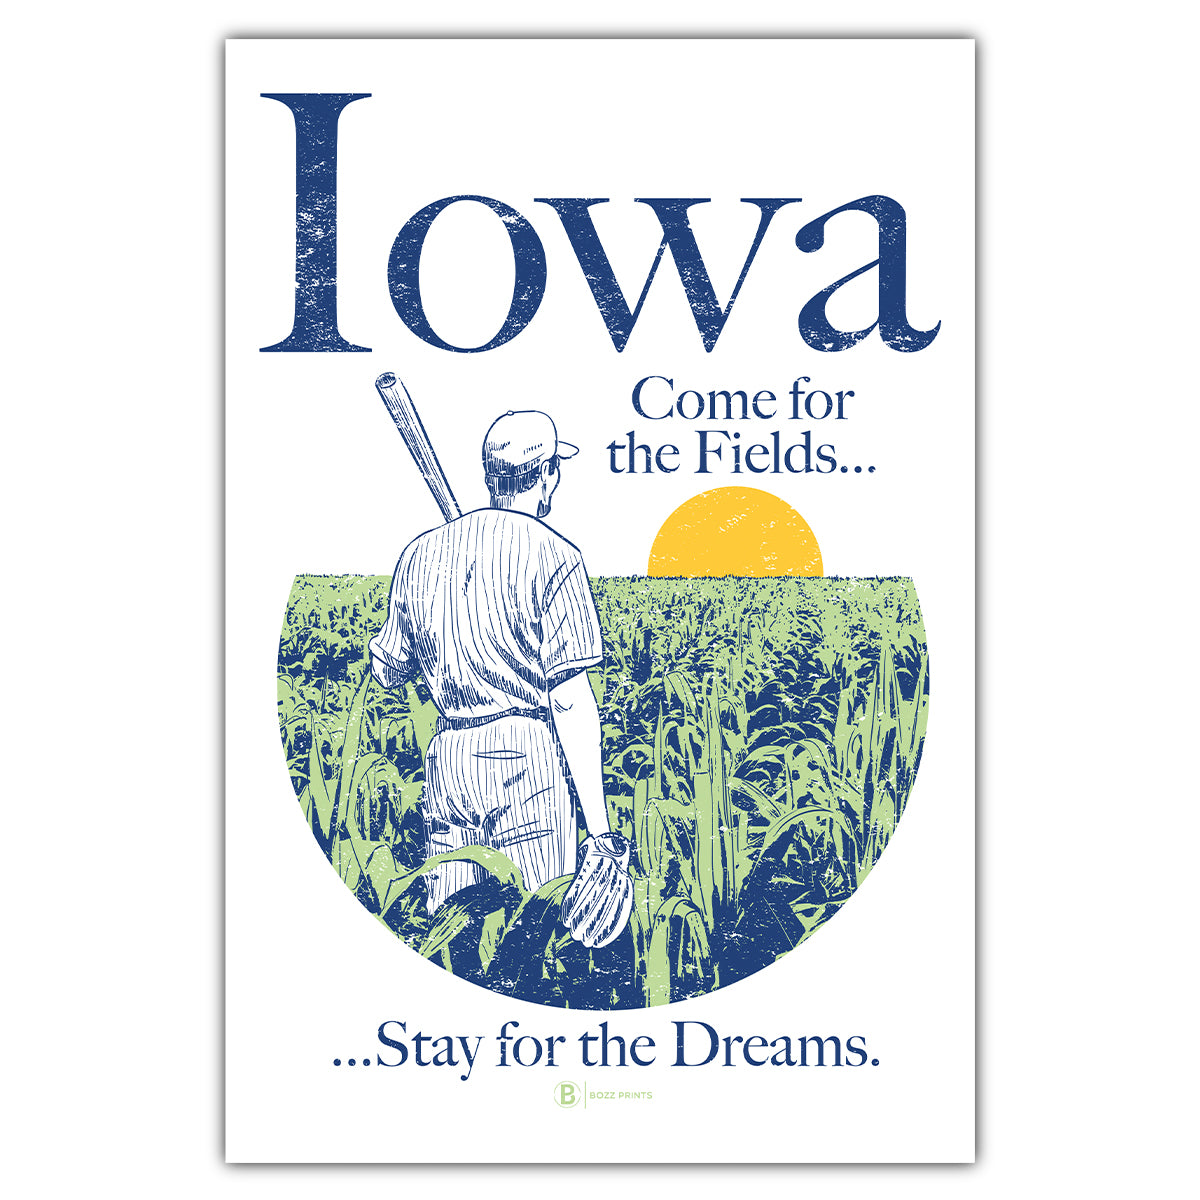 Iowa Come for the Fields Postcard